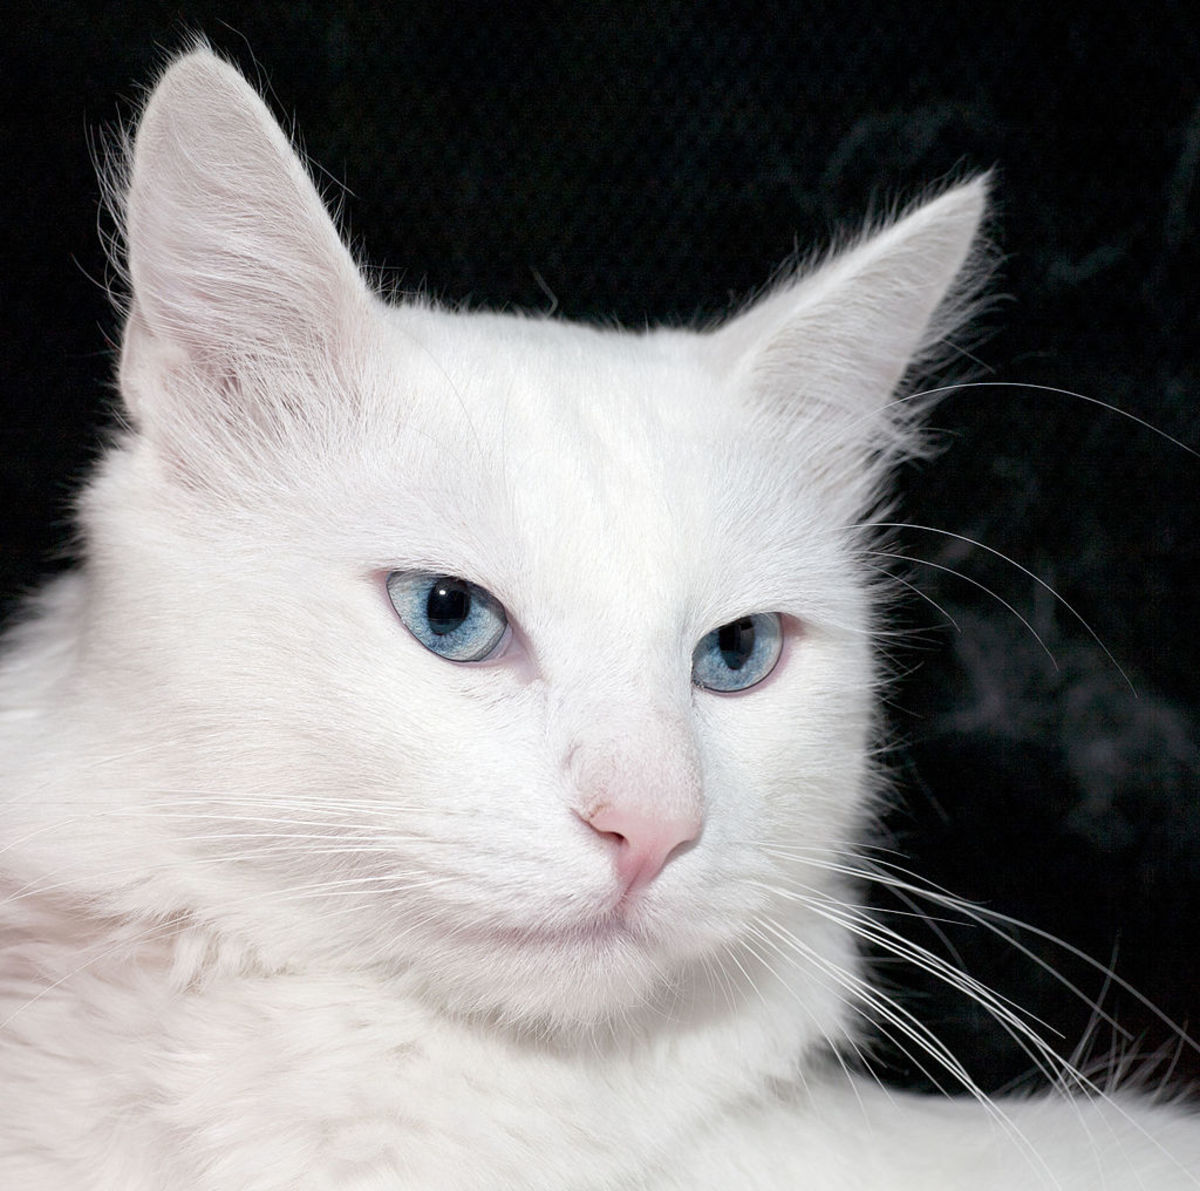 The beautiful Turkish Angora.